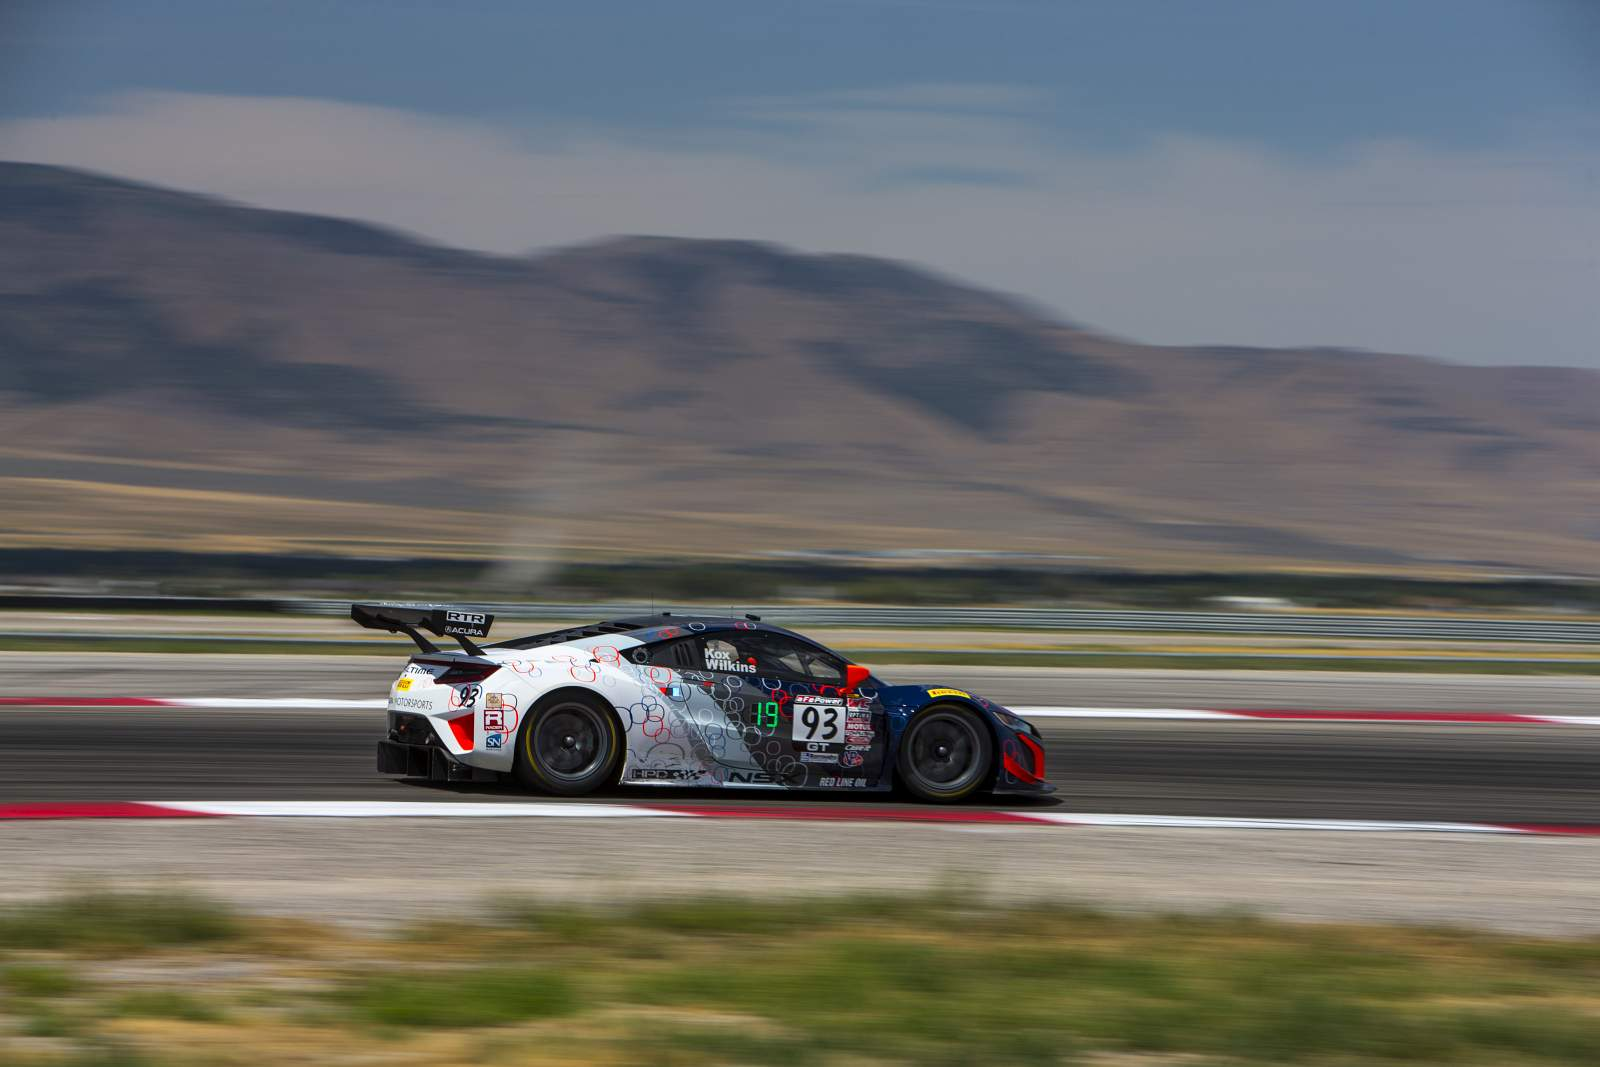 peter-kox-realtime-racing-pirelli-world-challenge-utah-motorsport-campus--207